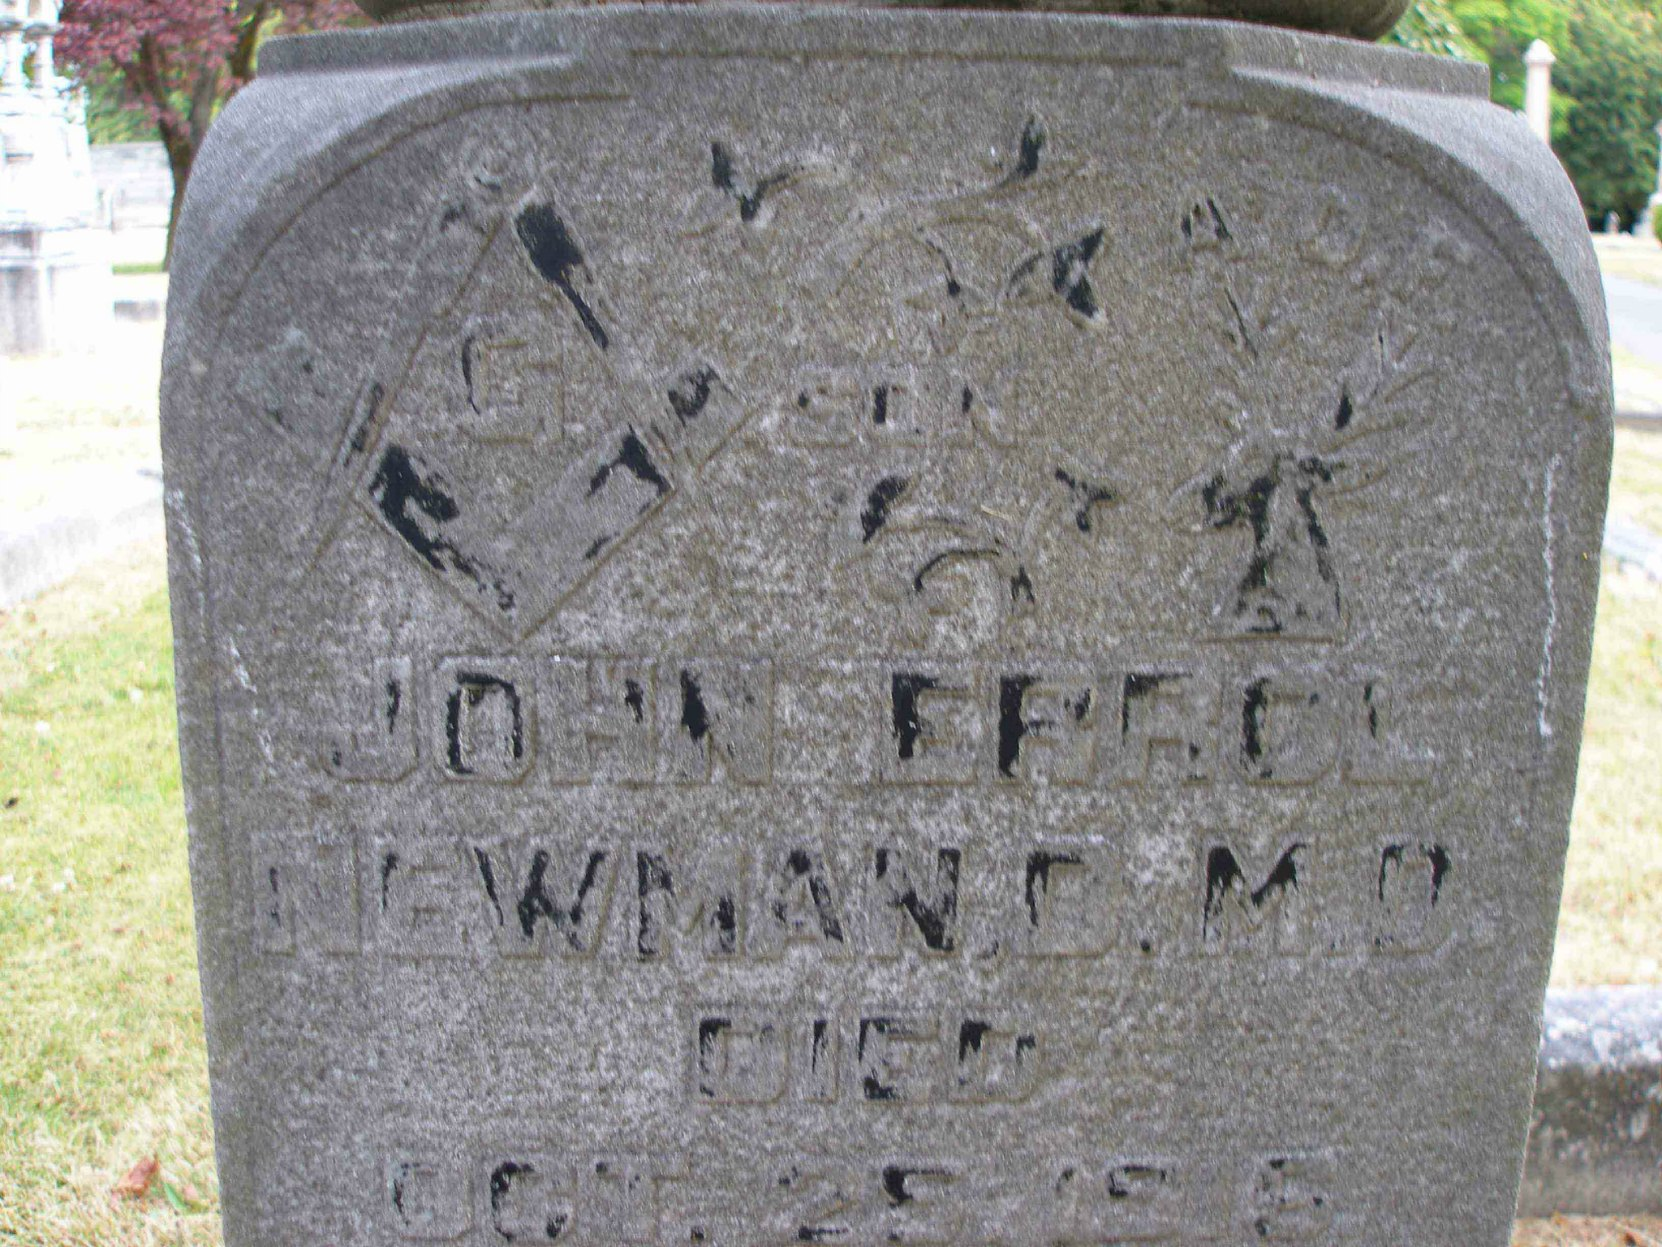 Inscription on the grave of Dr. John Errol Newman in Ross Bay cemetery. Although the original paint is very faded, the raised Masonic Square & Compasses and the Ancient Order of Foresters symbol can still be seen.